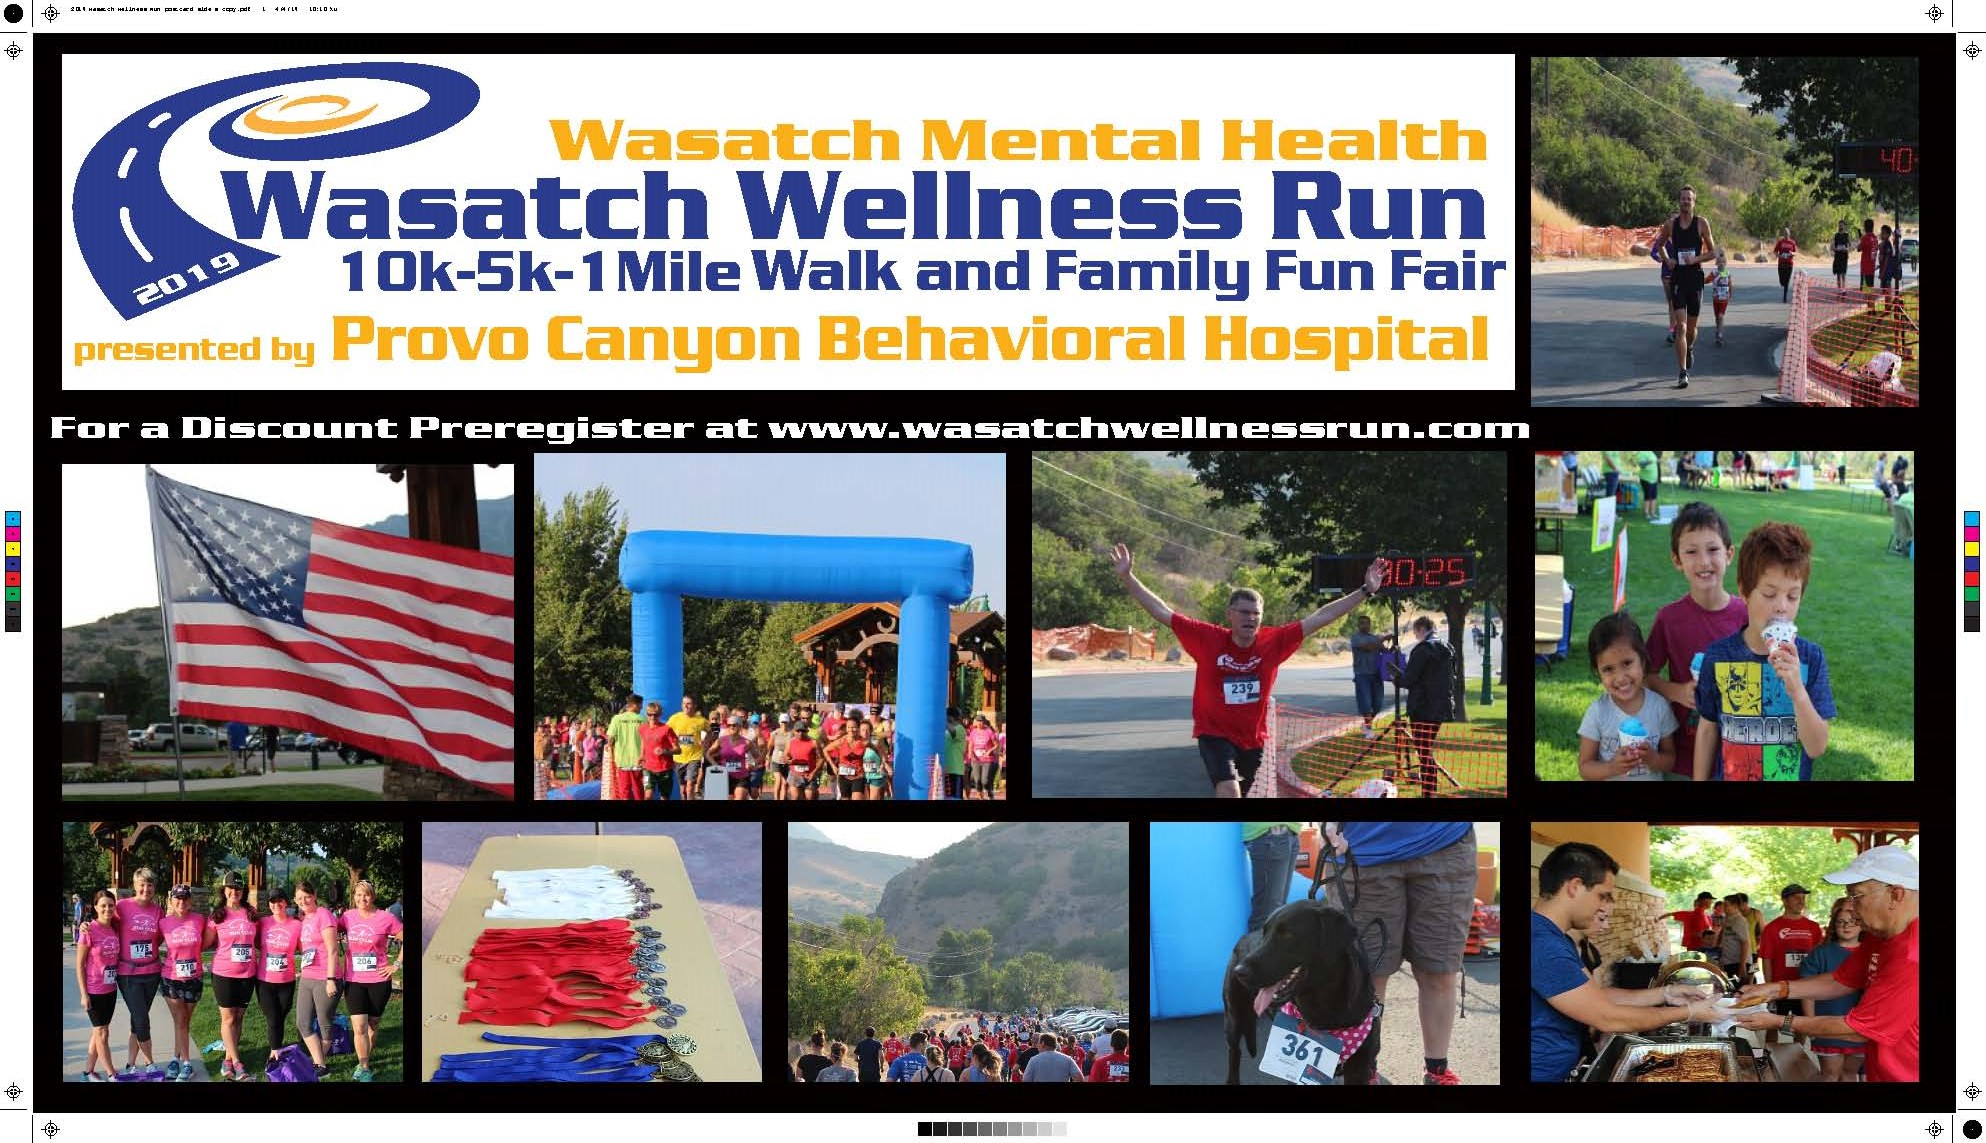 Wasatch Wellness Race flyer, Provo